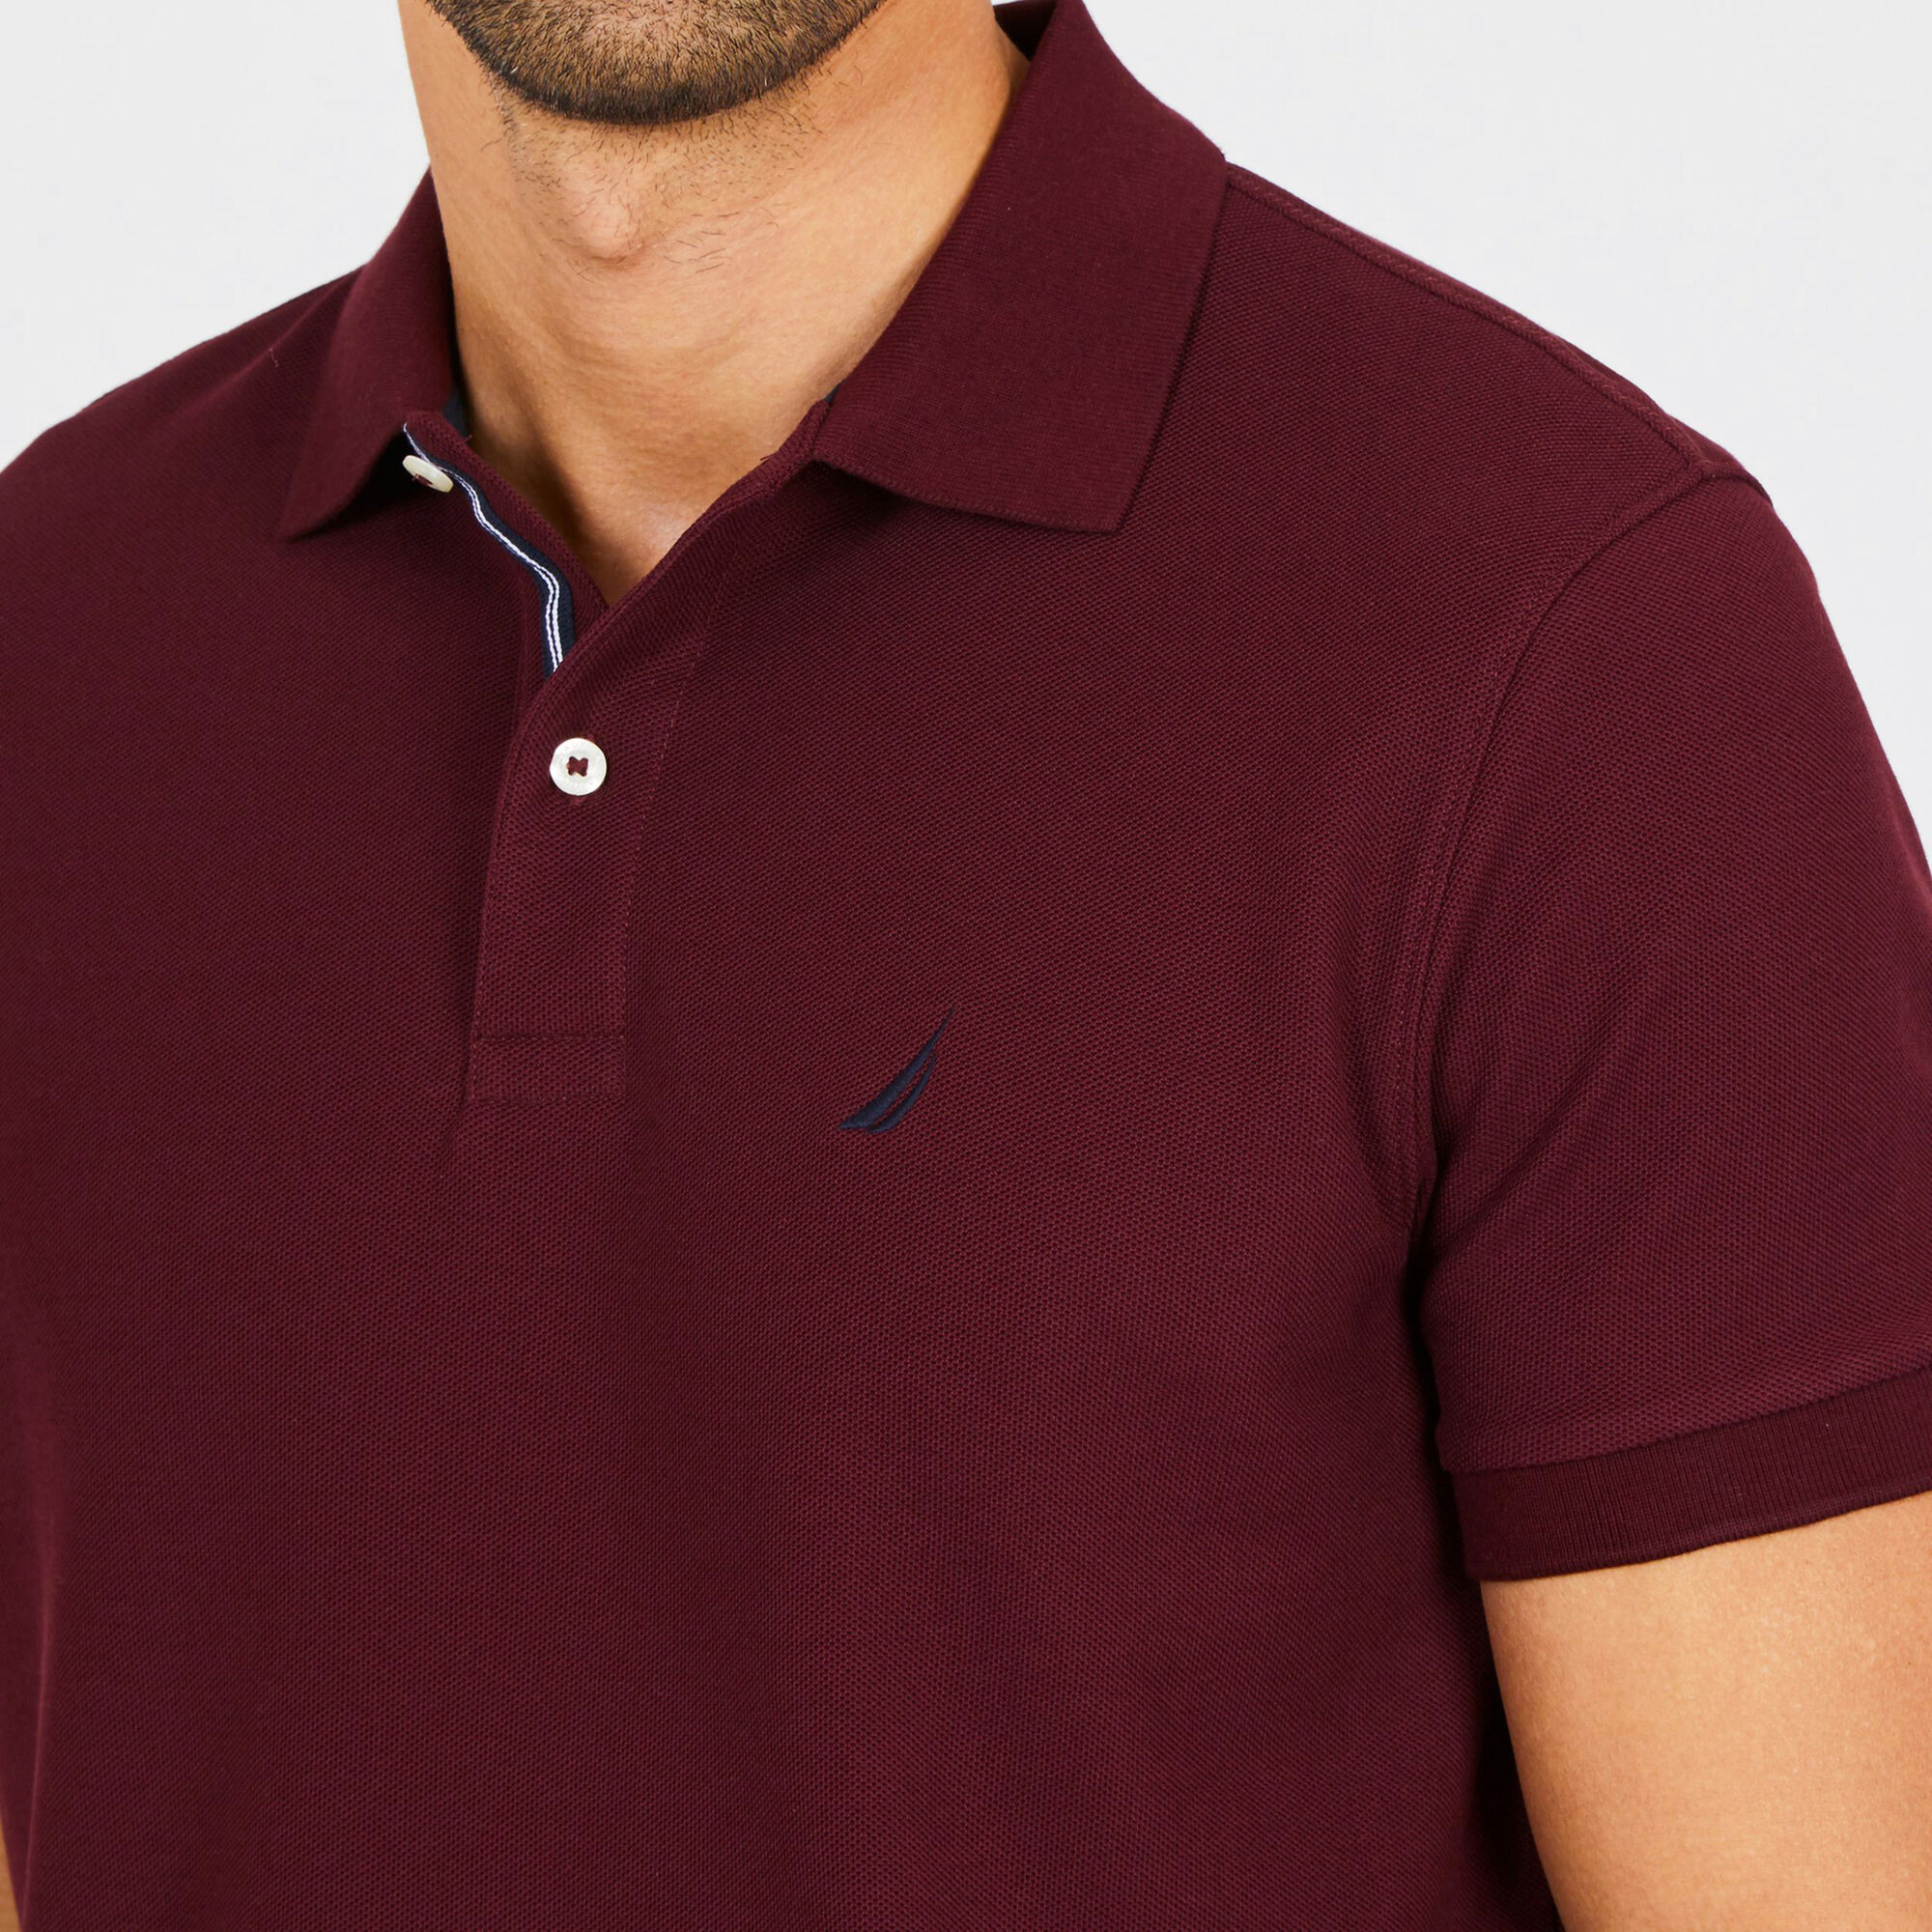 718e2178 Big & Tall Short Sleeve Classic Fit Stretch Deck Polo - Fuchsia, 3XL |  Nautica